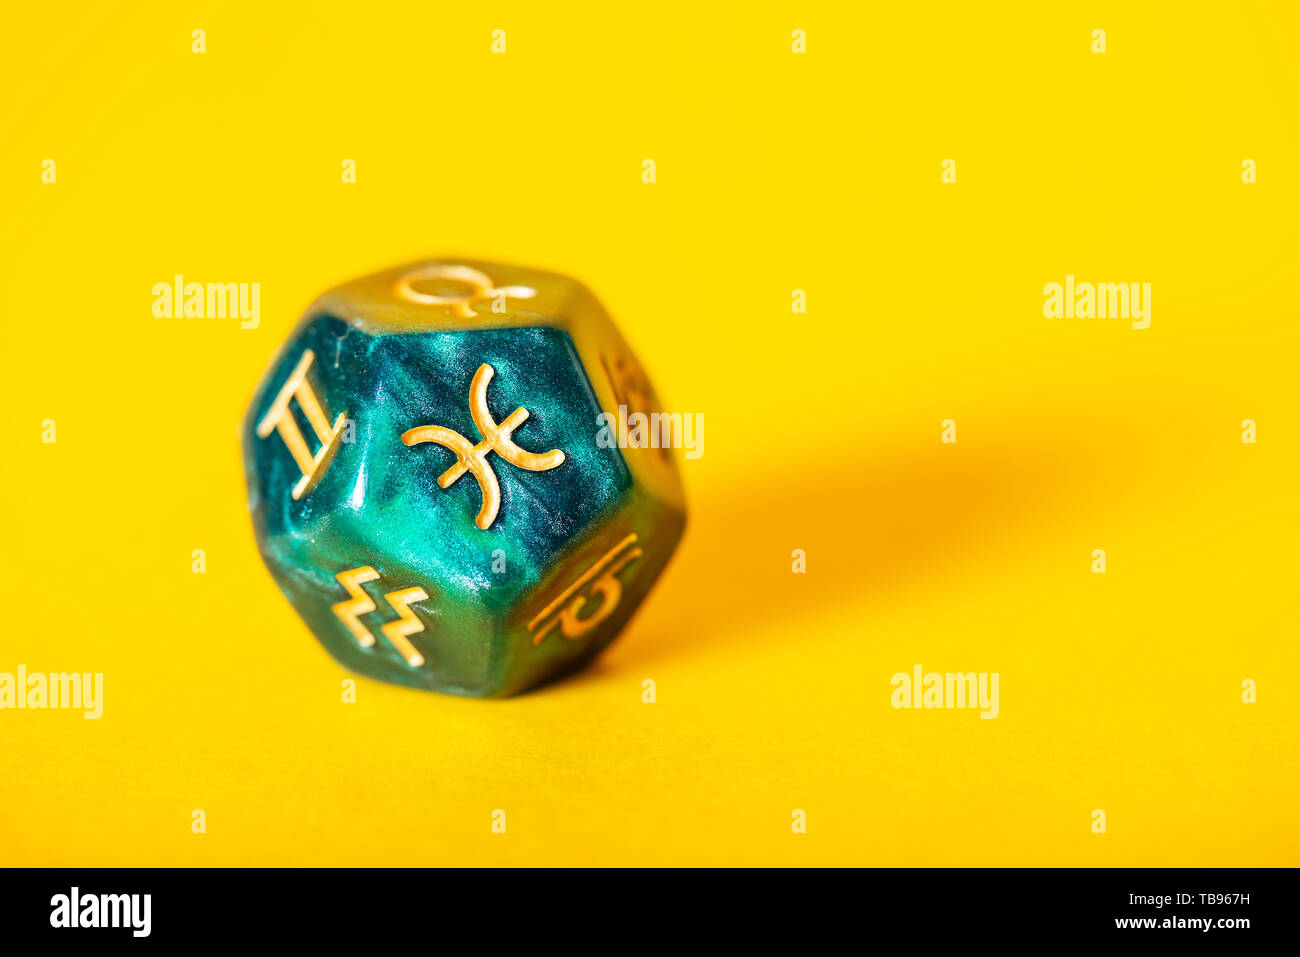 Astrology Dice With Zodiac Symbol Of Pisces Feb 19 Mar 20 On Yellow Background Stock Photo Alamy